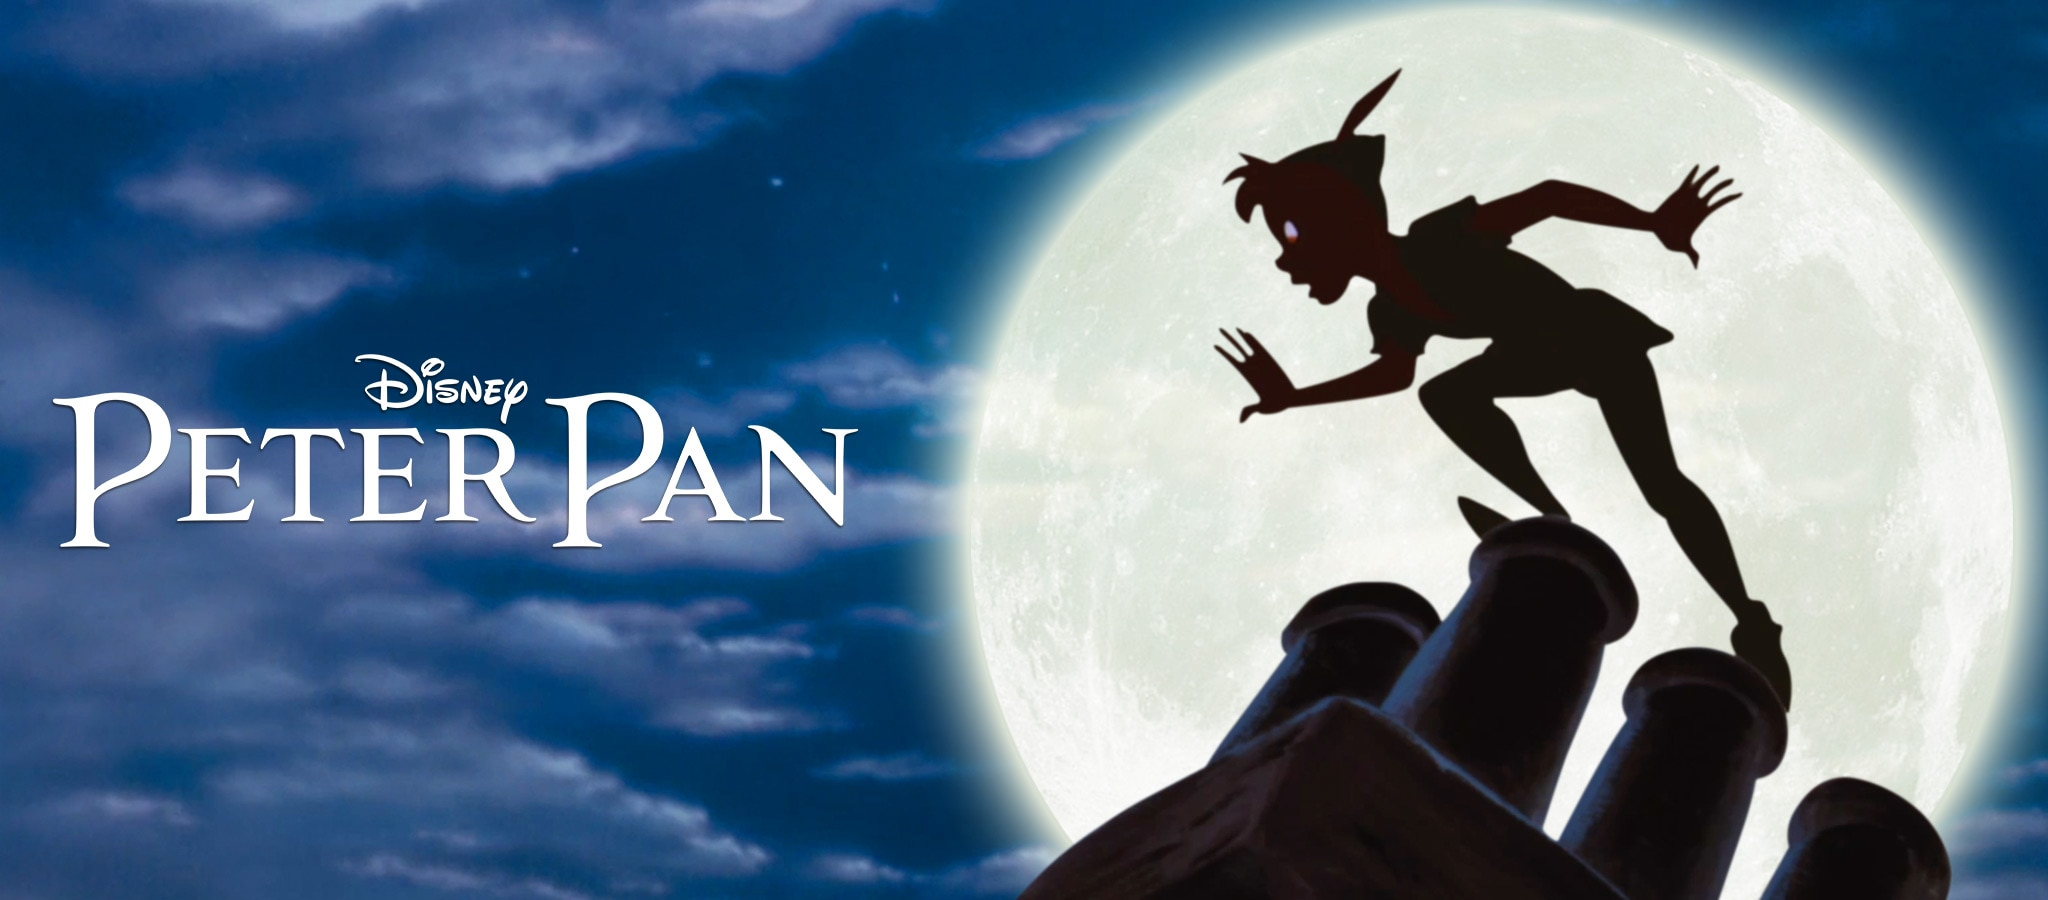 Neverland Quotes Wallpaper Peter Pan Disney Movies